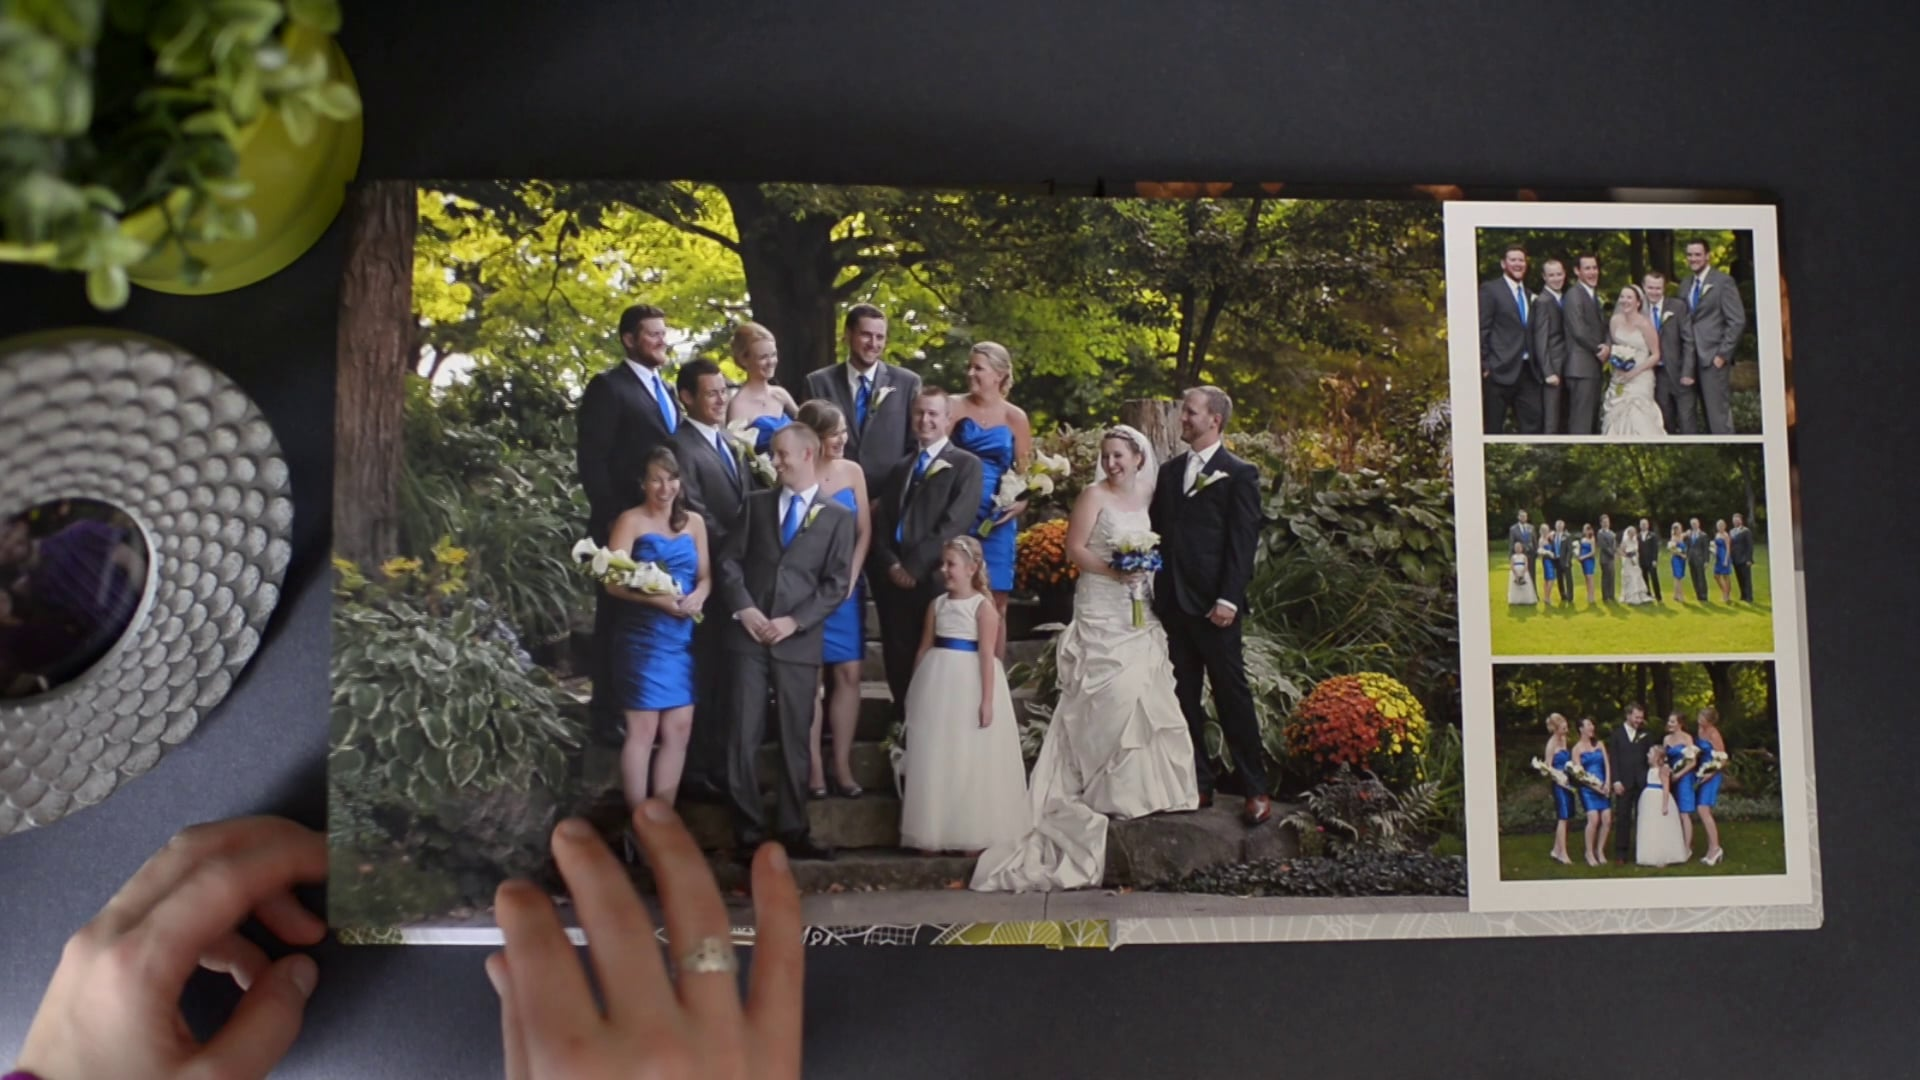 Press to watch a full wedding album flip-through